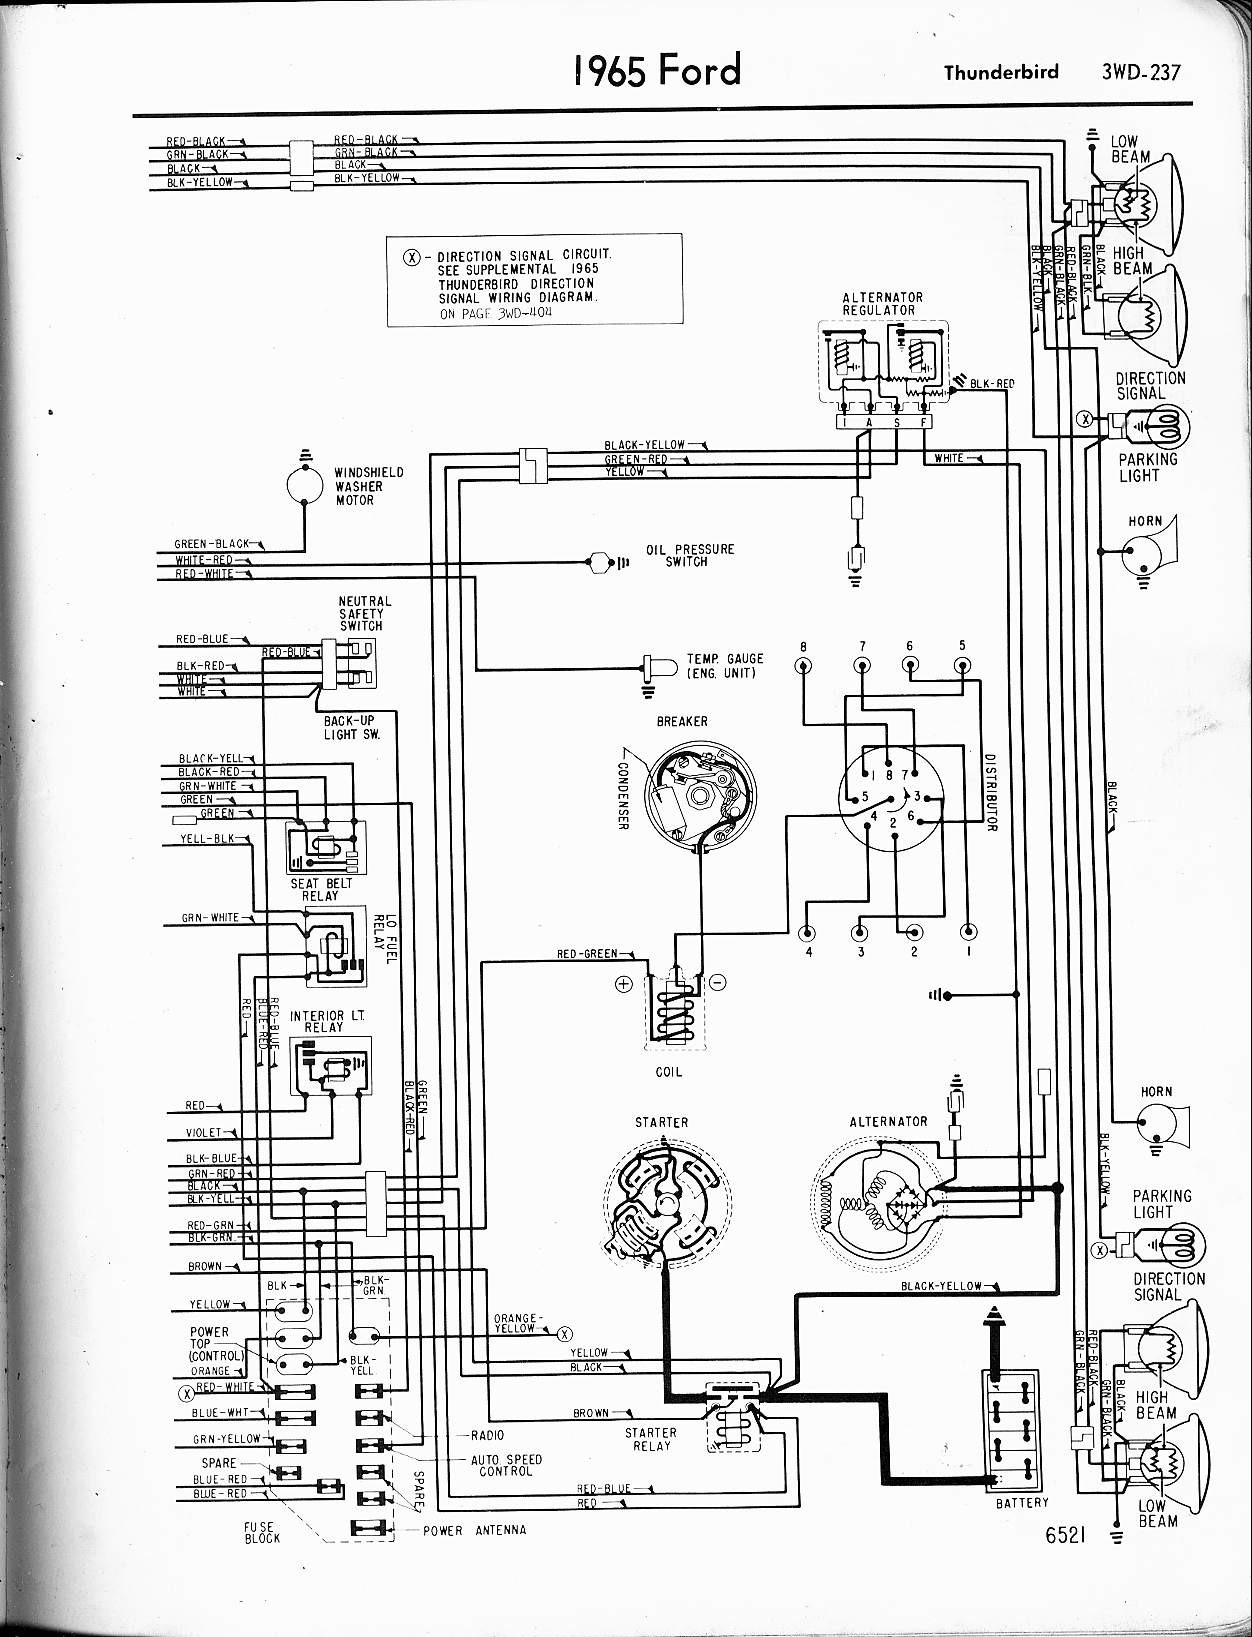 2006 Dodge Charger Engine Diagram How To Change Timing Belt 3 5l Diagrams Circuit Breaker Free Download Wiring Of